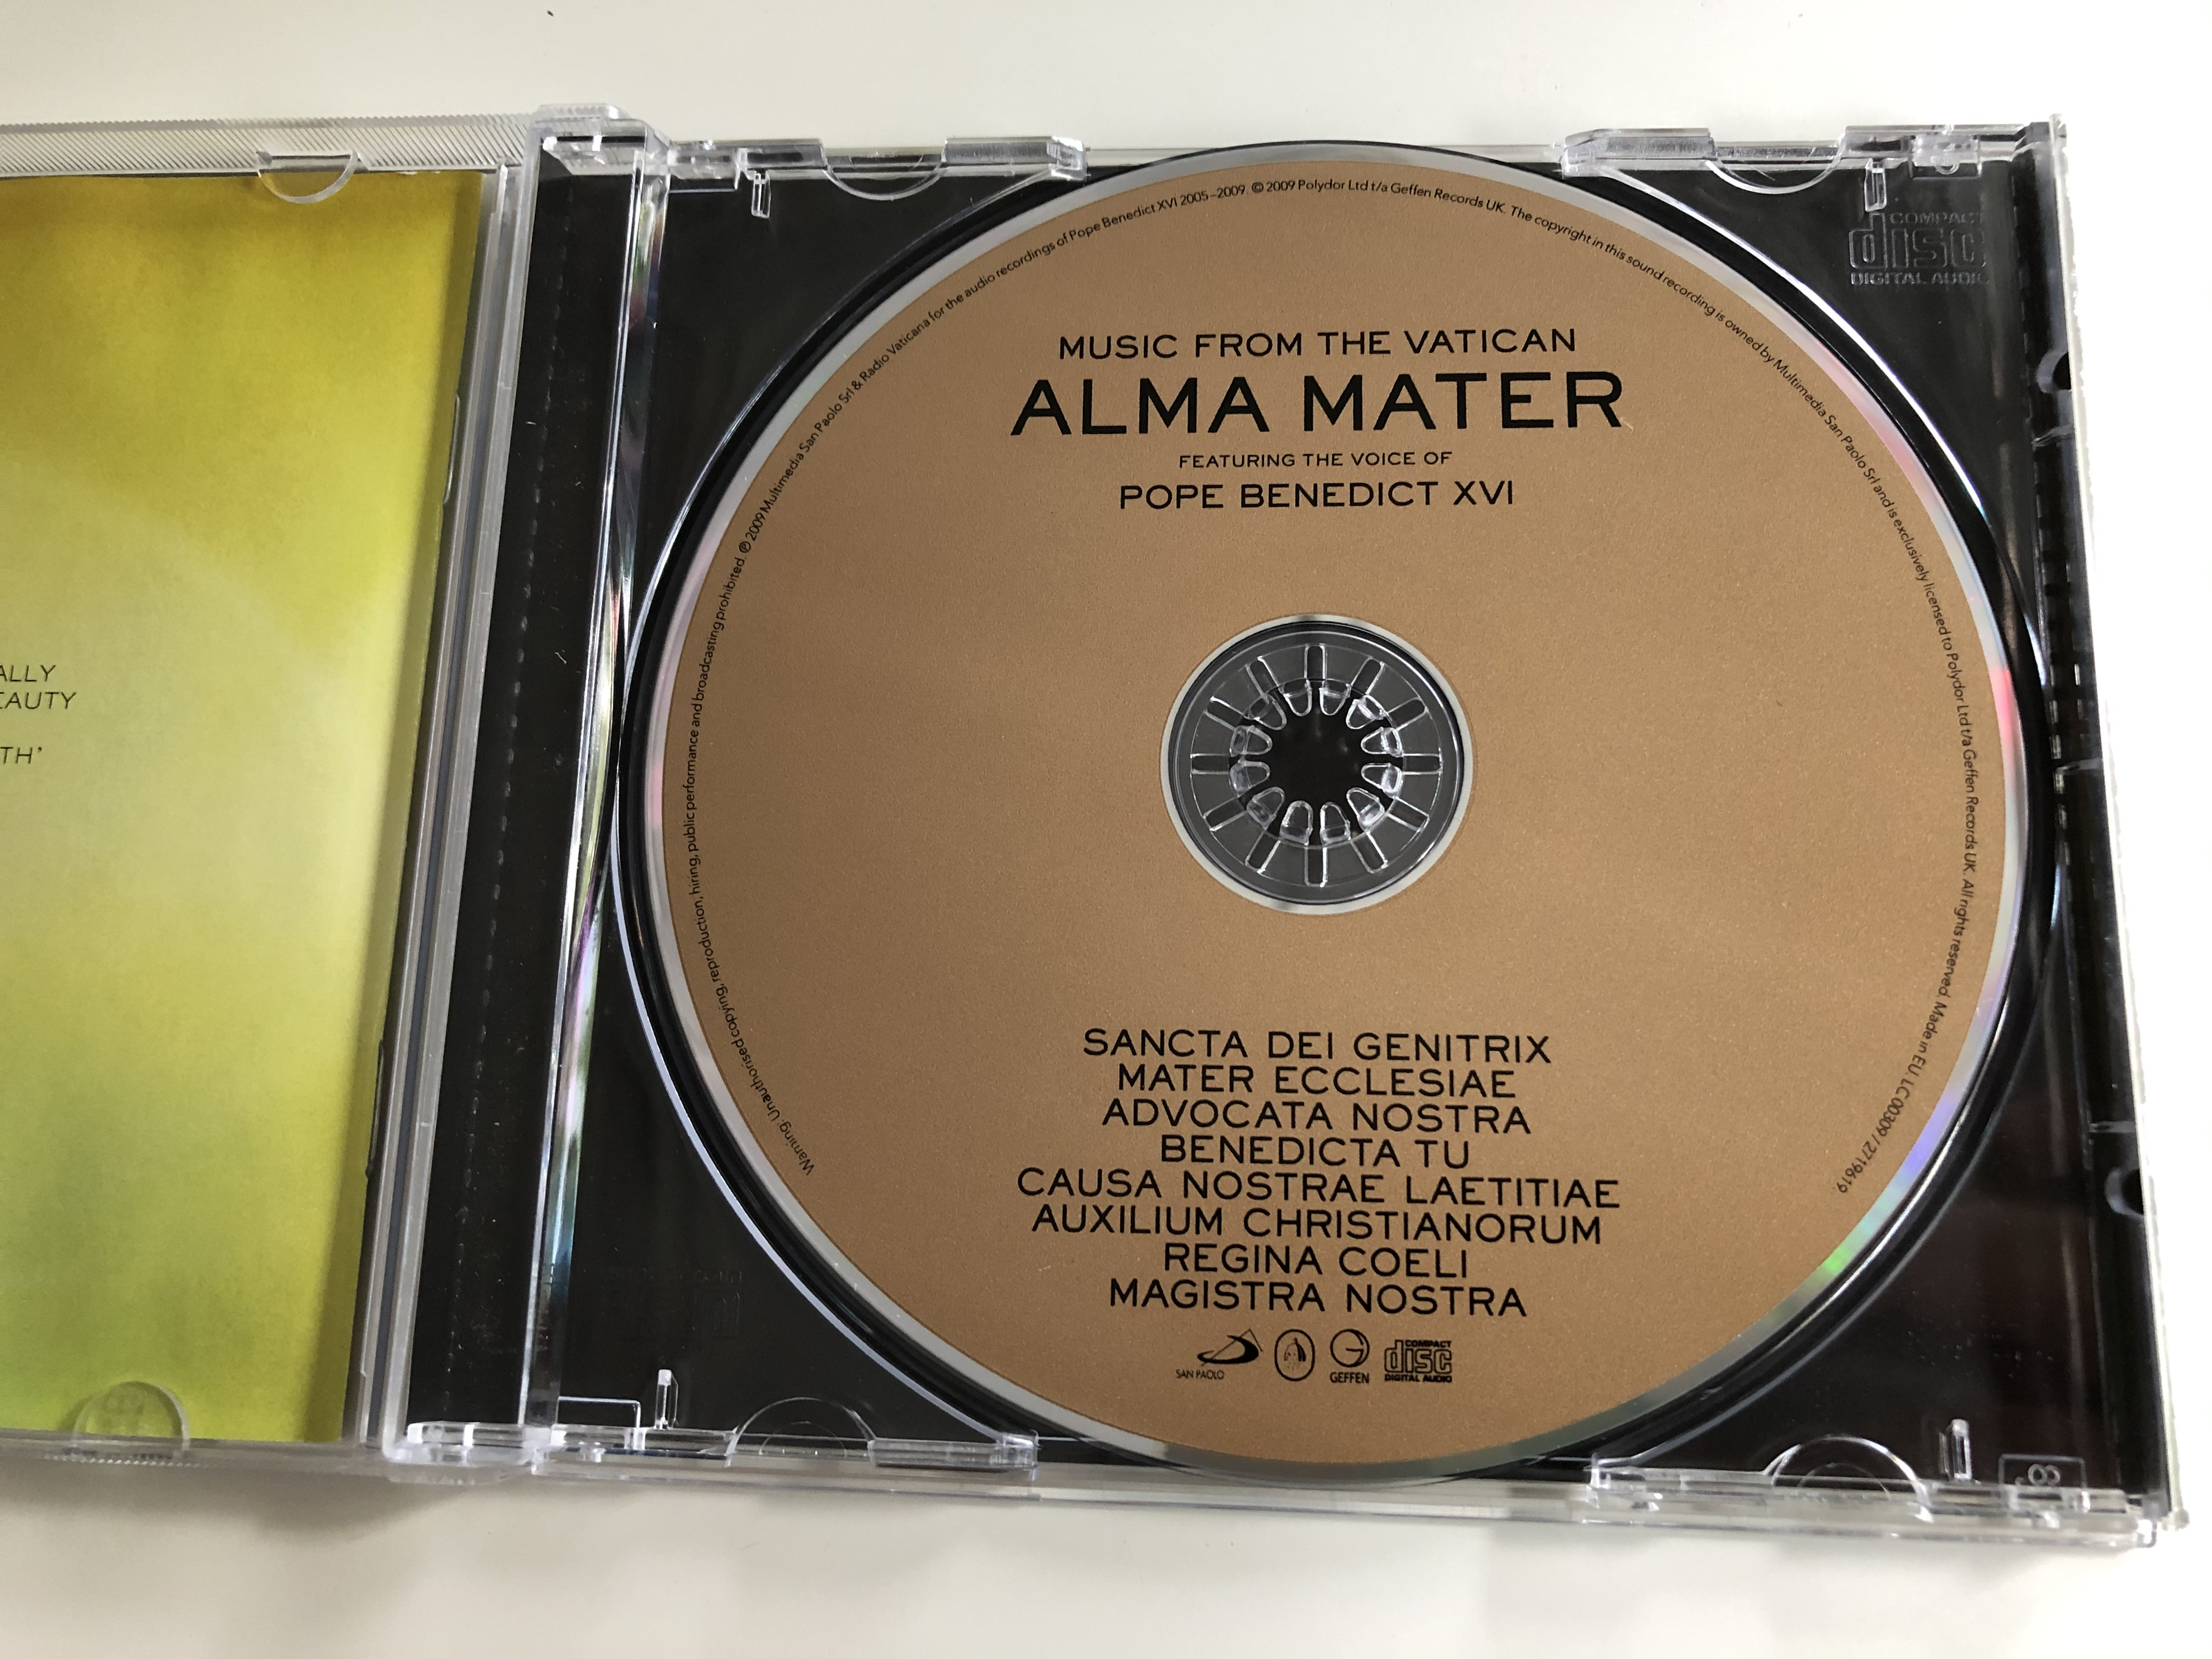 music-from-the-vatican-alma-mater-featuring-the-voice-of-pope-benedict-xvi-san-paolo-audio-cd-2009-2719619-14-.jpg